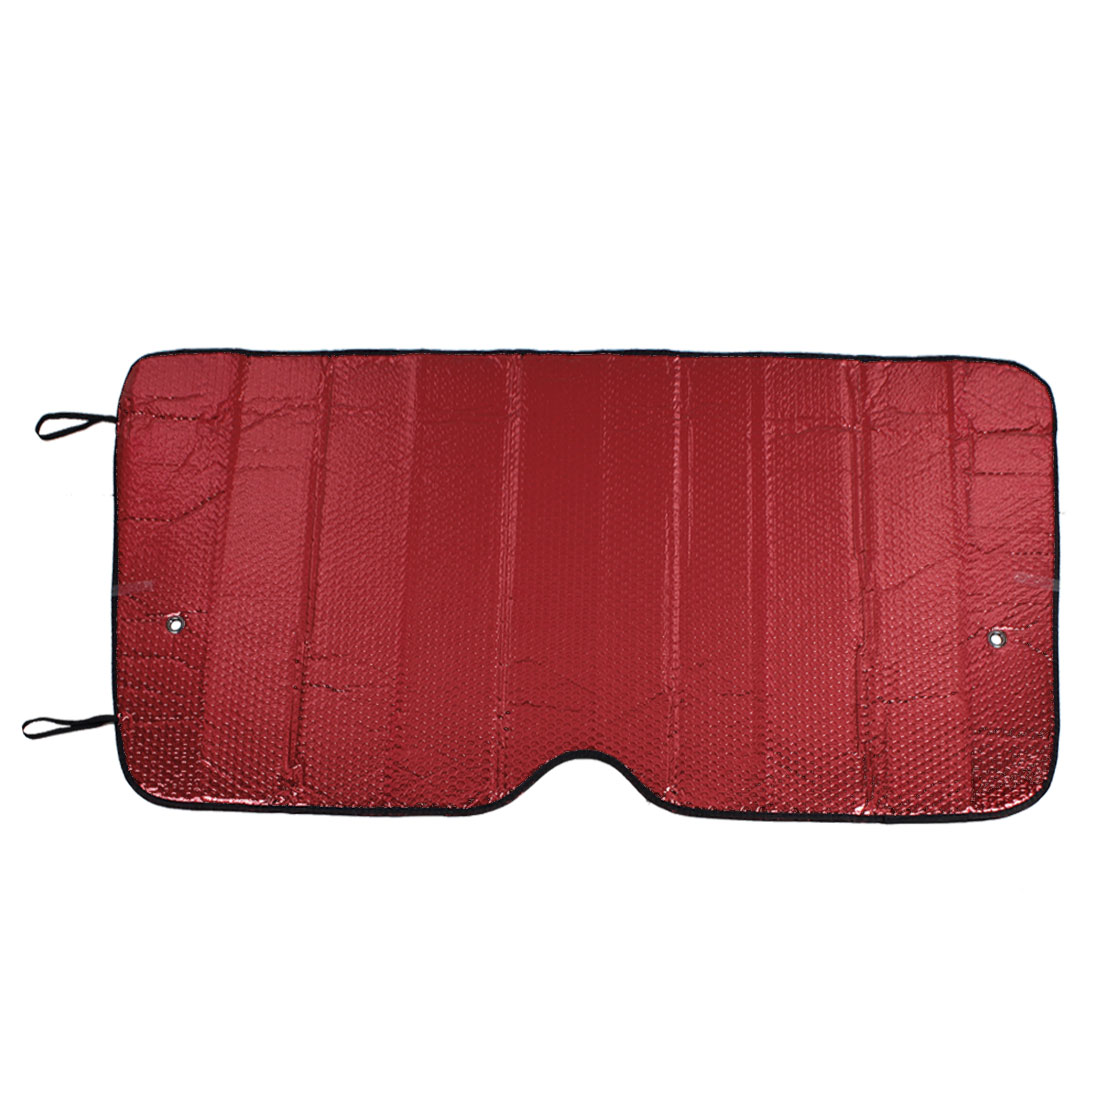 Red Textured Windshield Sun Visor Sunshade Protector 116 x 61cm for Car